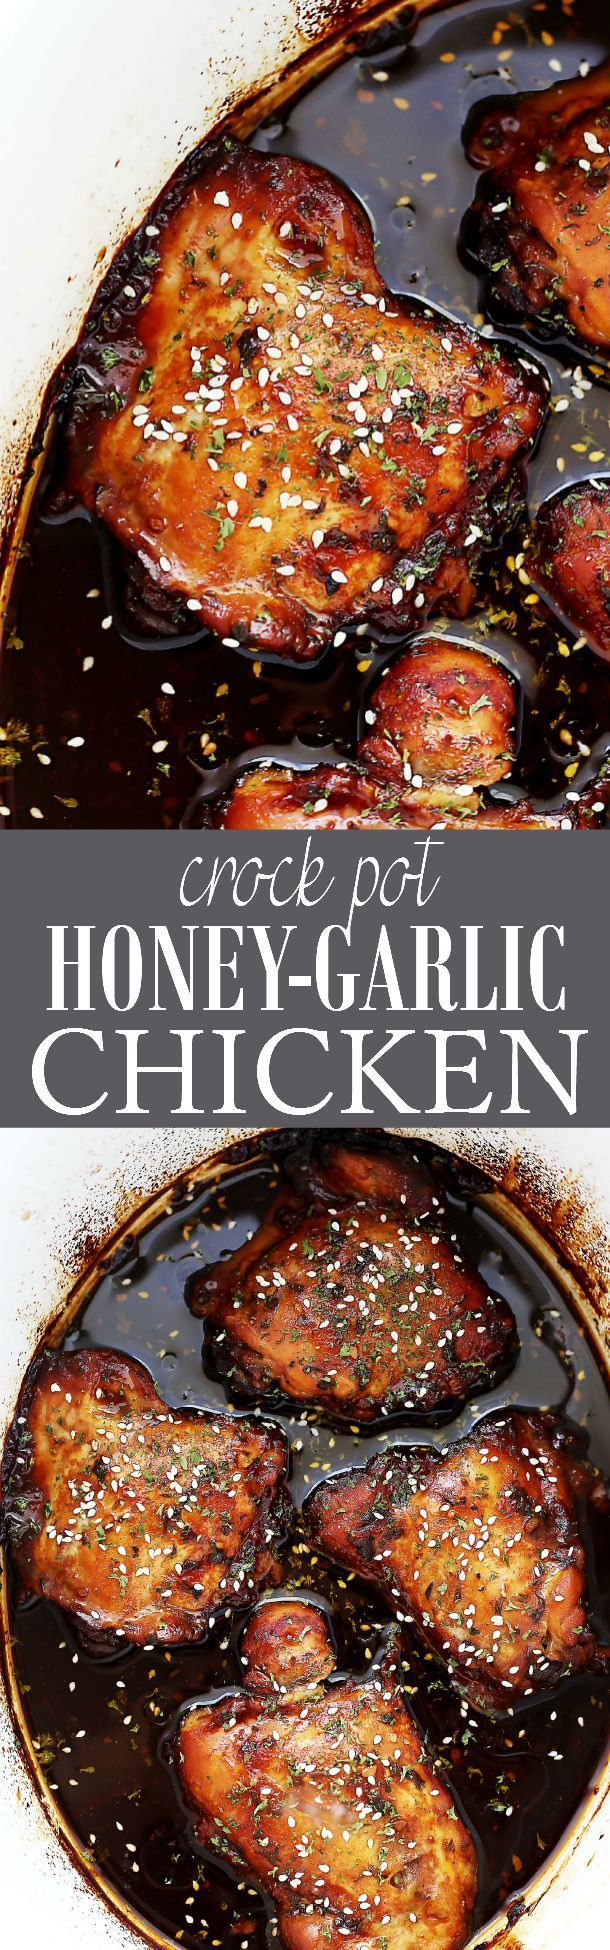 chrome and hearts sunglasses Crock Pot Honey Garlic Chicken   www diethood com   Easy crock pot recipe for chicken thighs cooked in an incredibly delicious honey garlic sauce